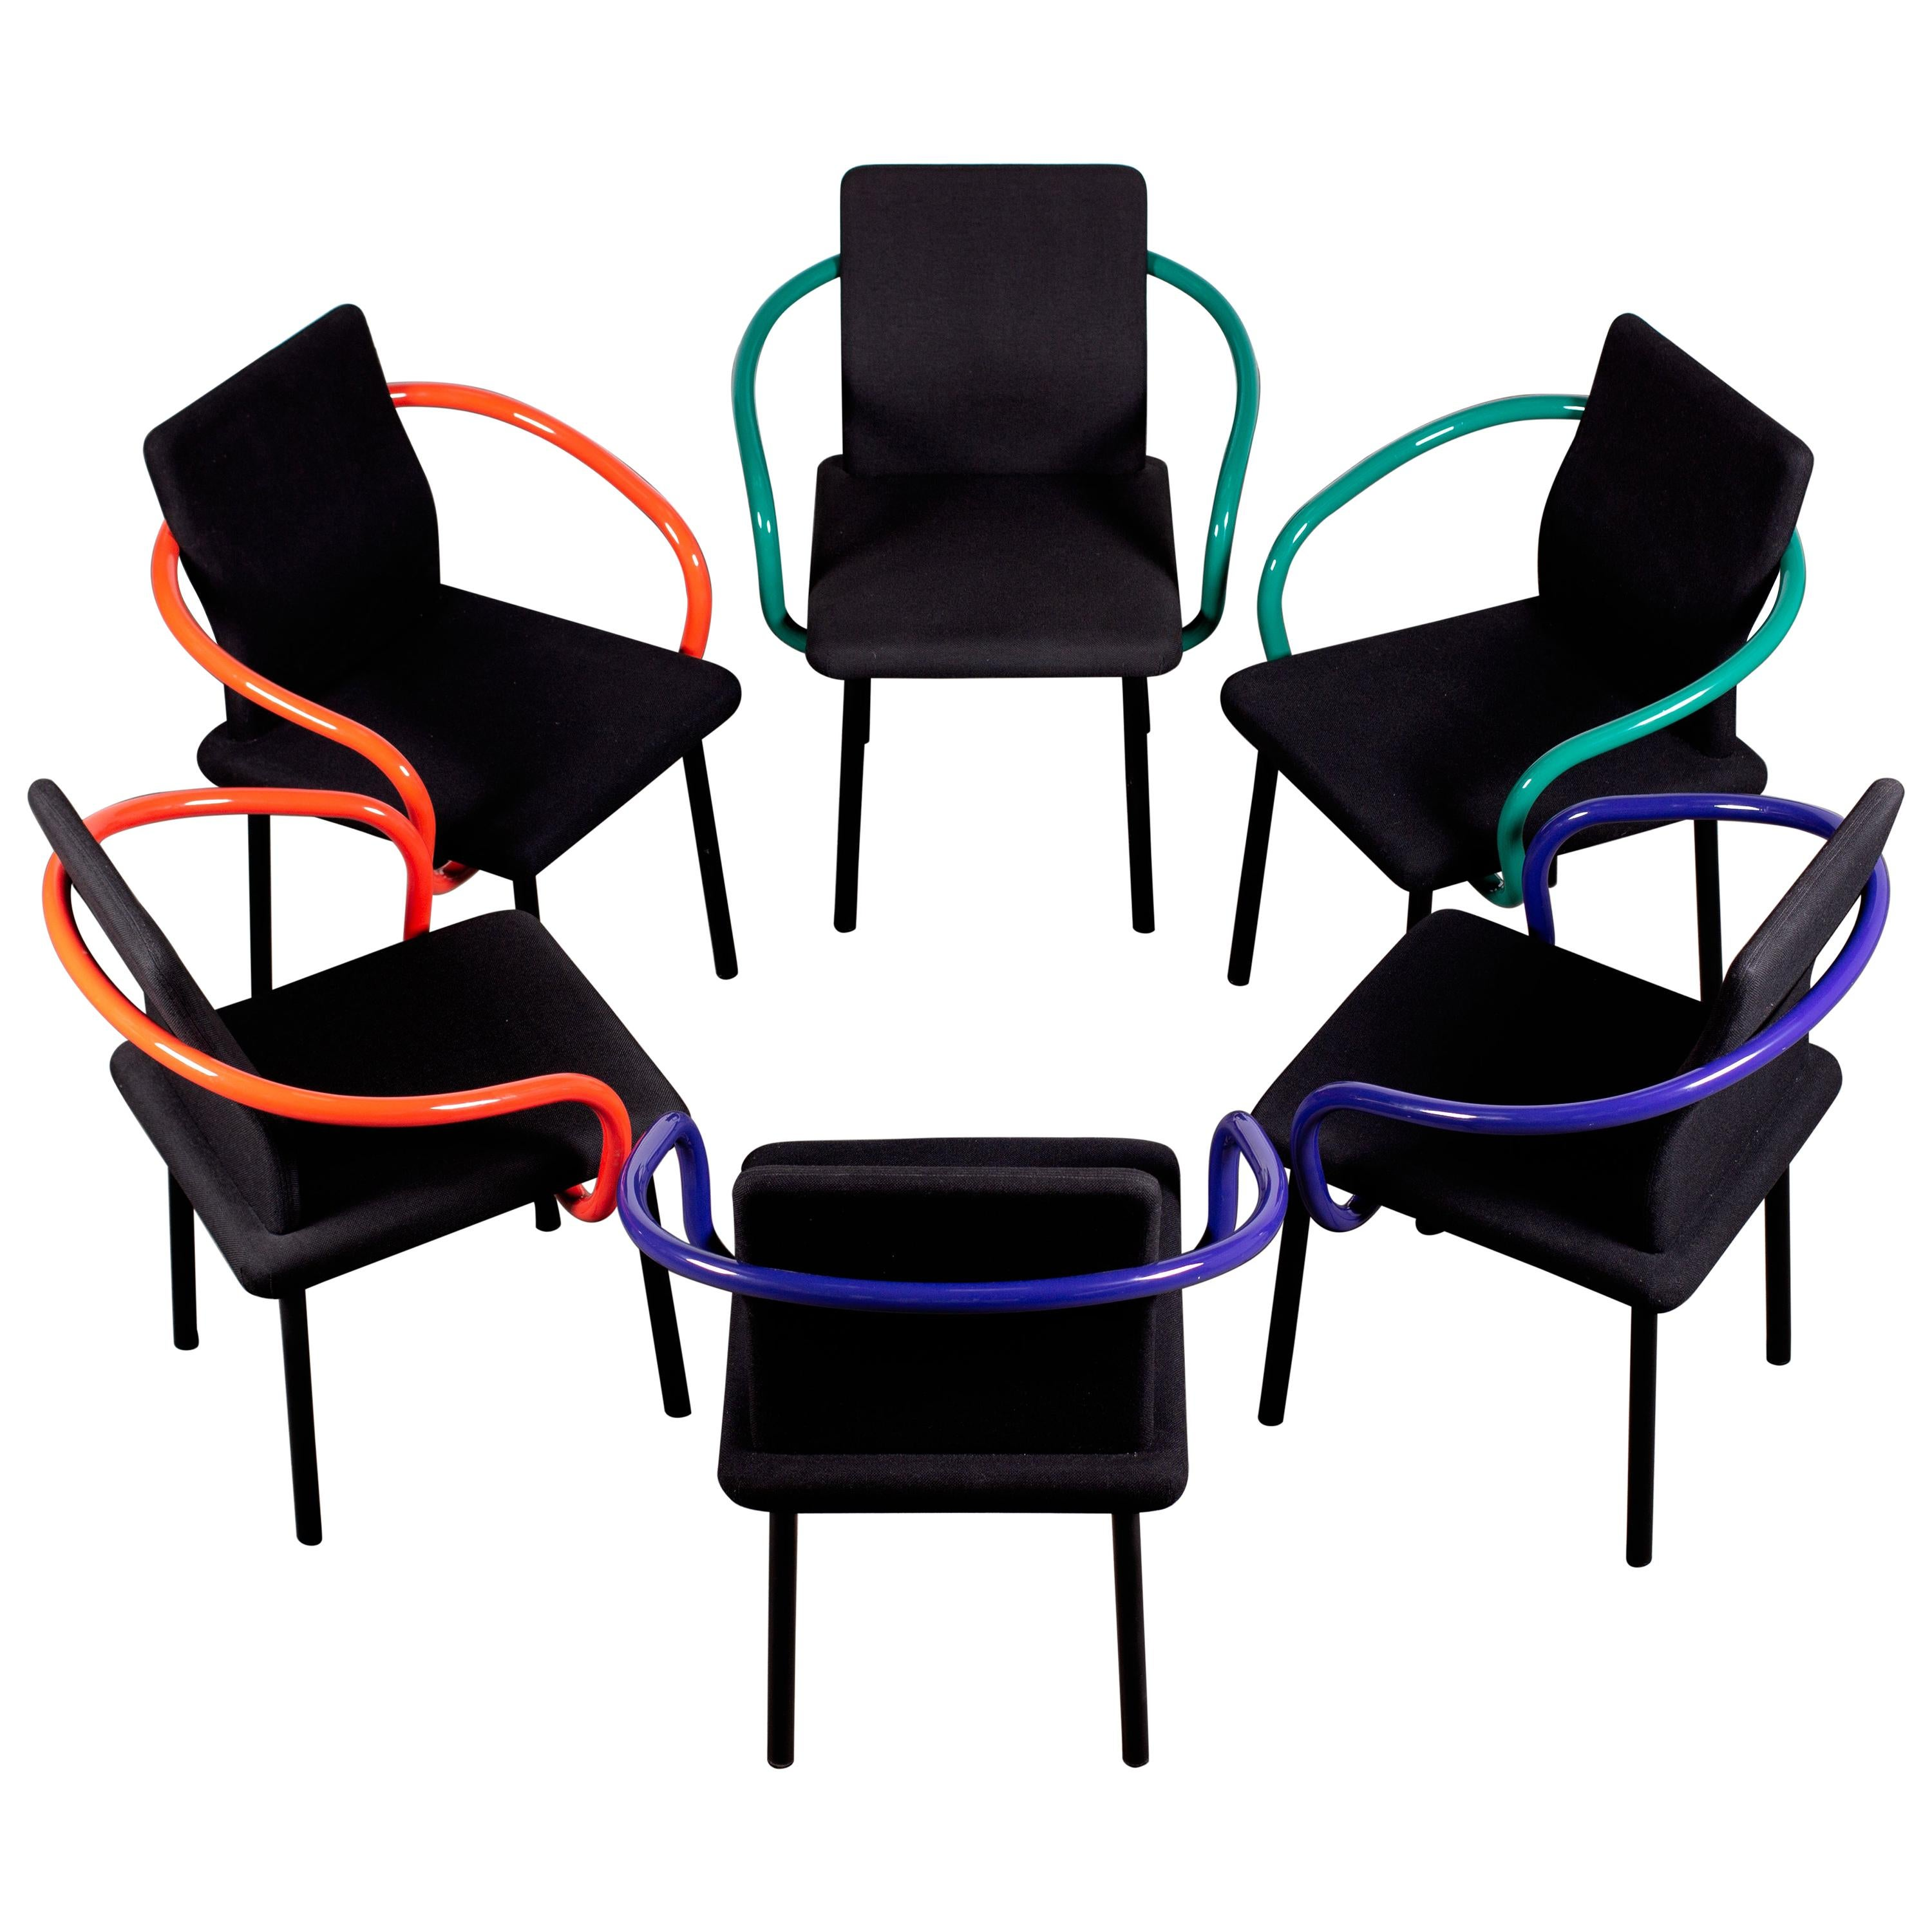 6 Ettore Sottsass Mandarin Chairs for Knoll